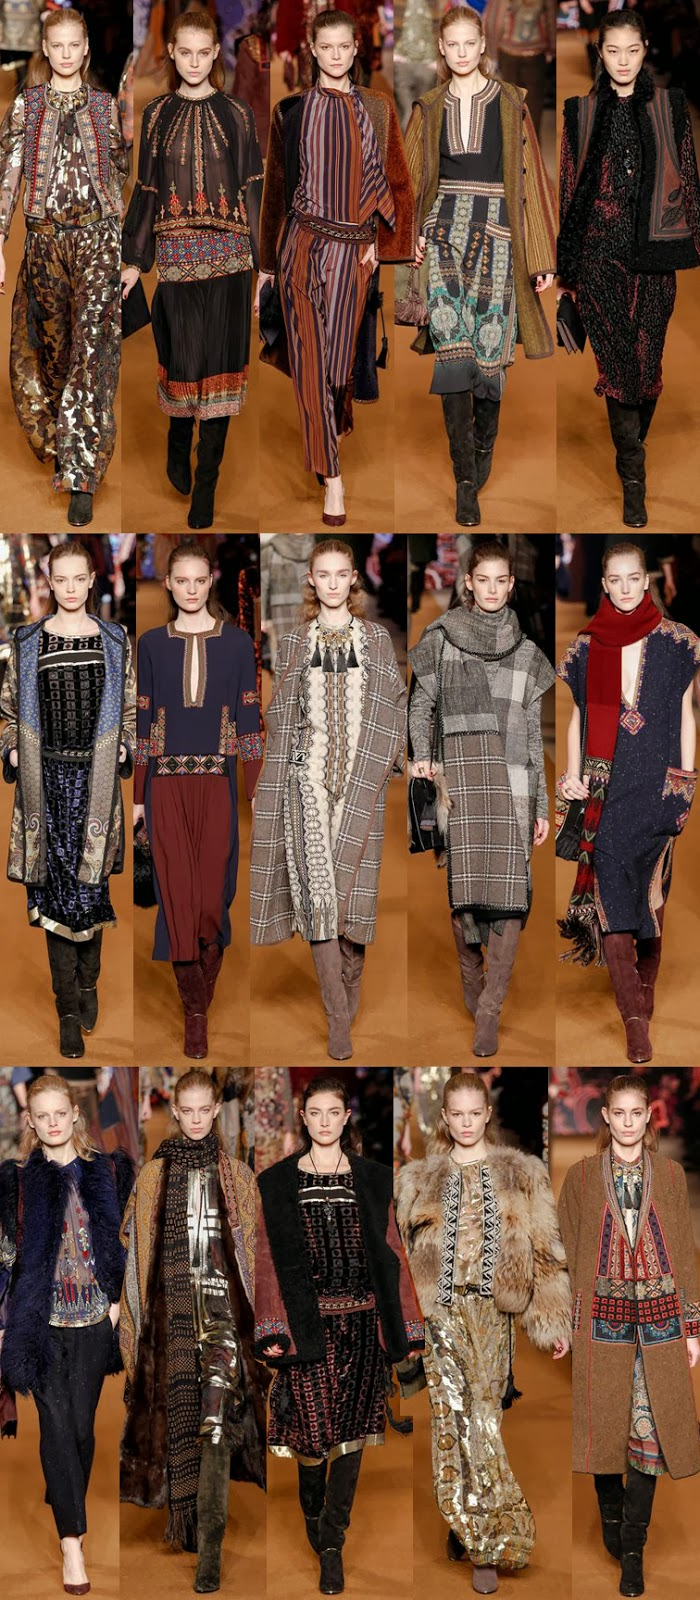 Etro fall winter 2014 runway collection, Veronica Etro, FW14, AW13, MFW, Milan fashion week, boho, gypsy, gypset